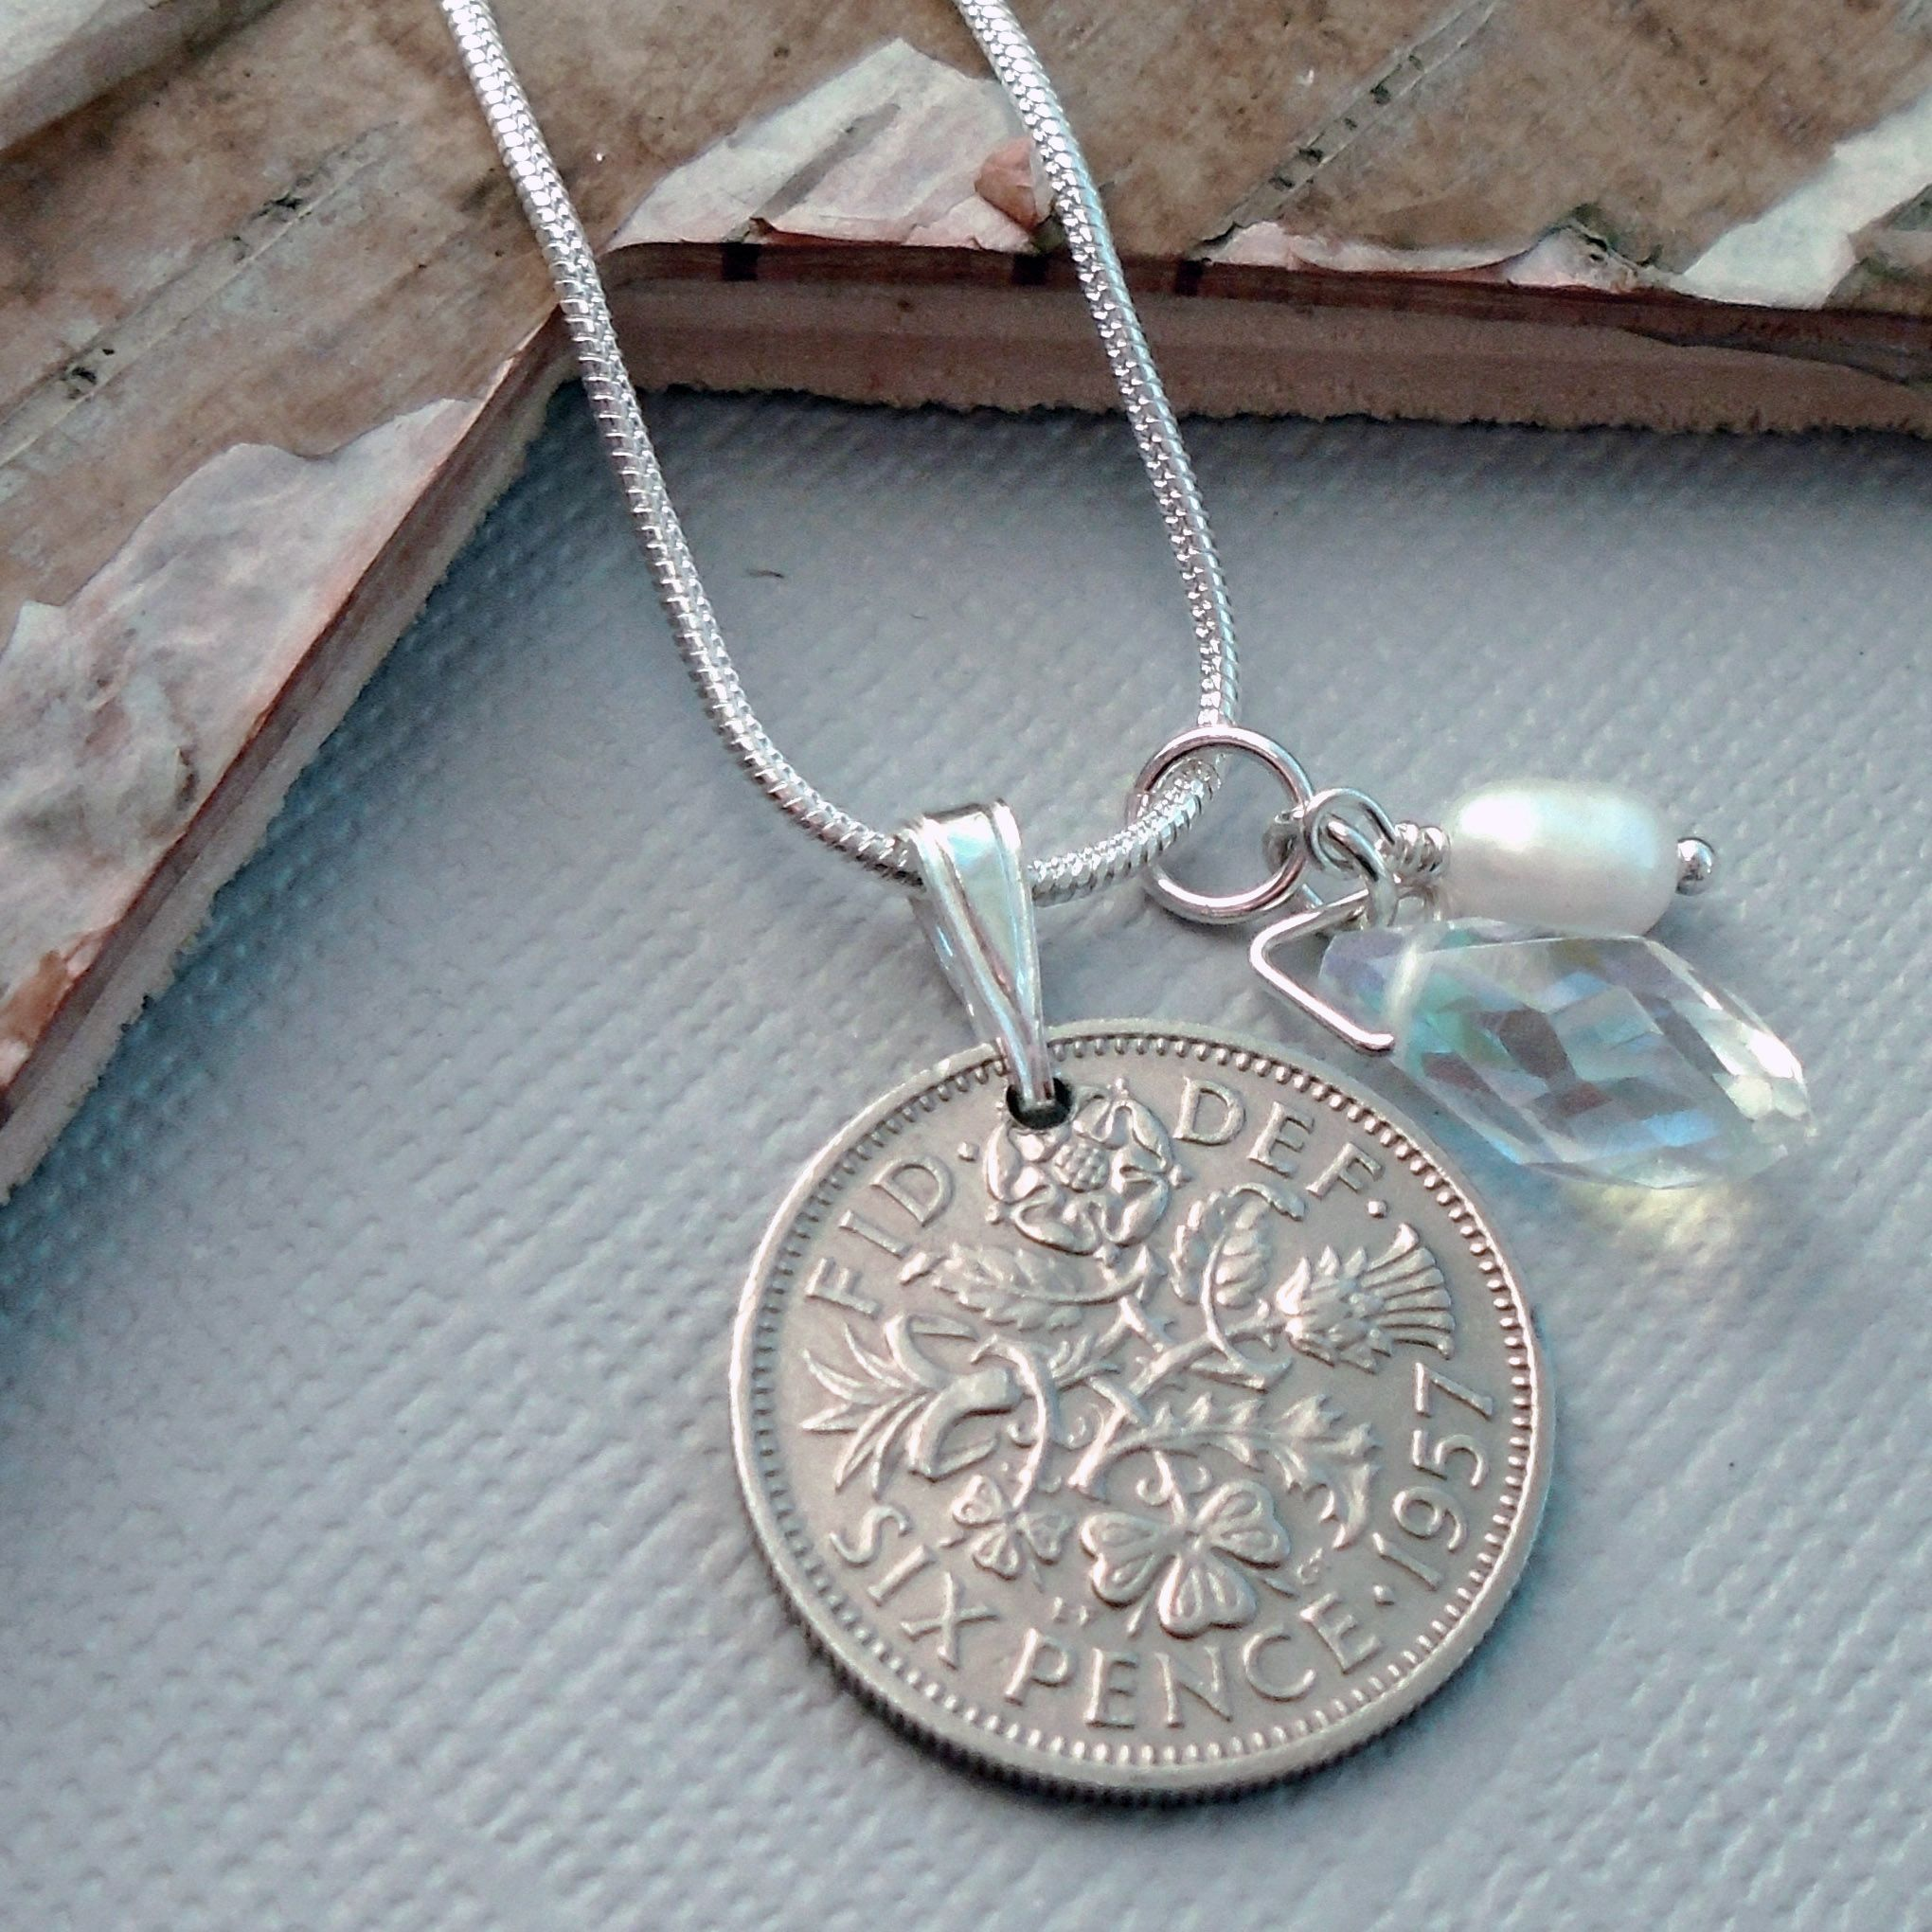 60th birthday gift 1957 lucky sixpence necklace with